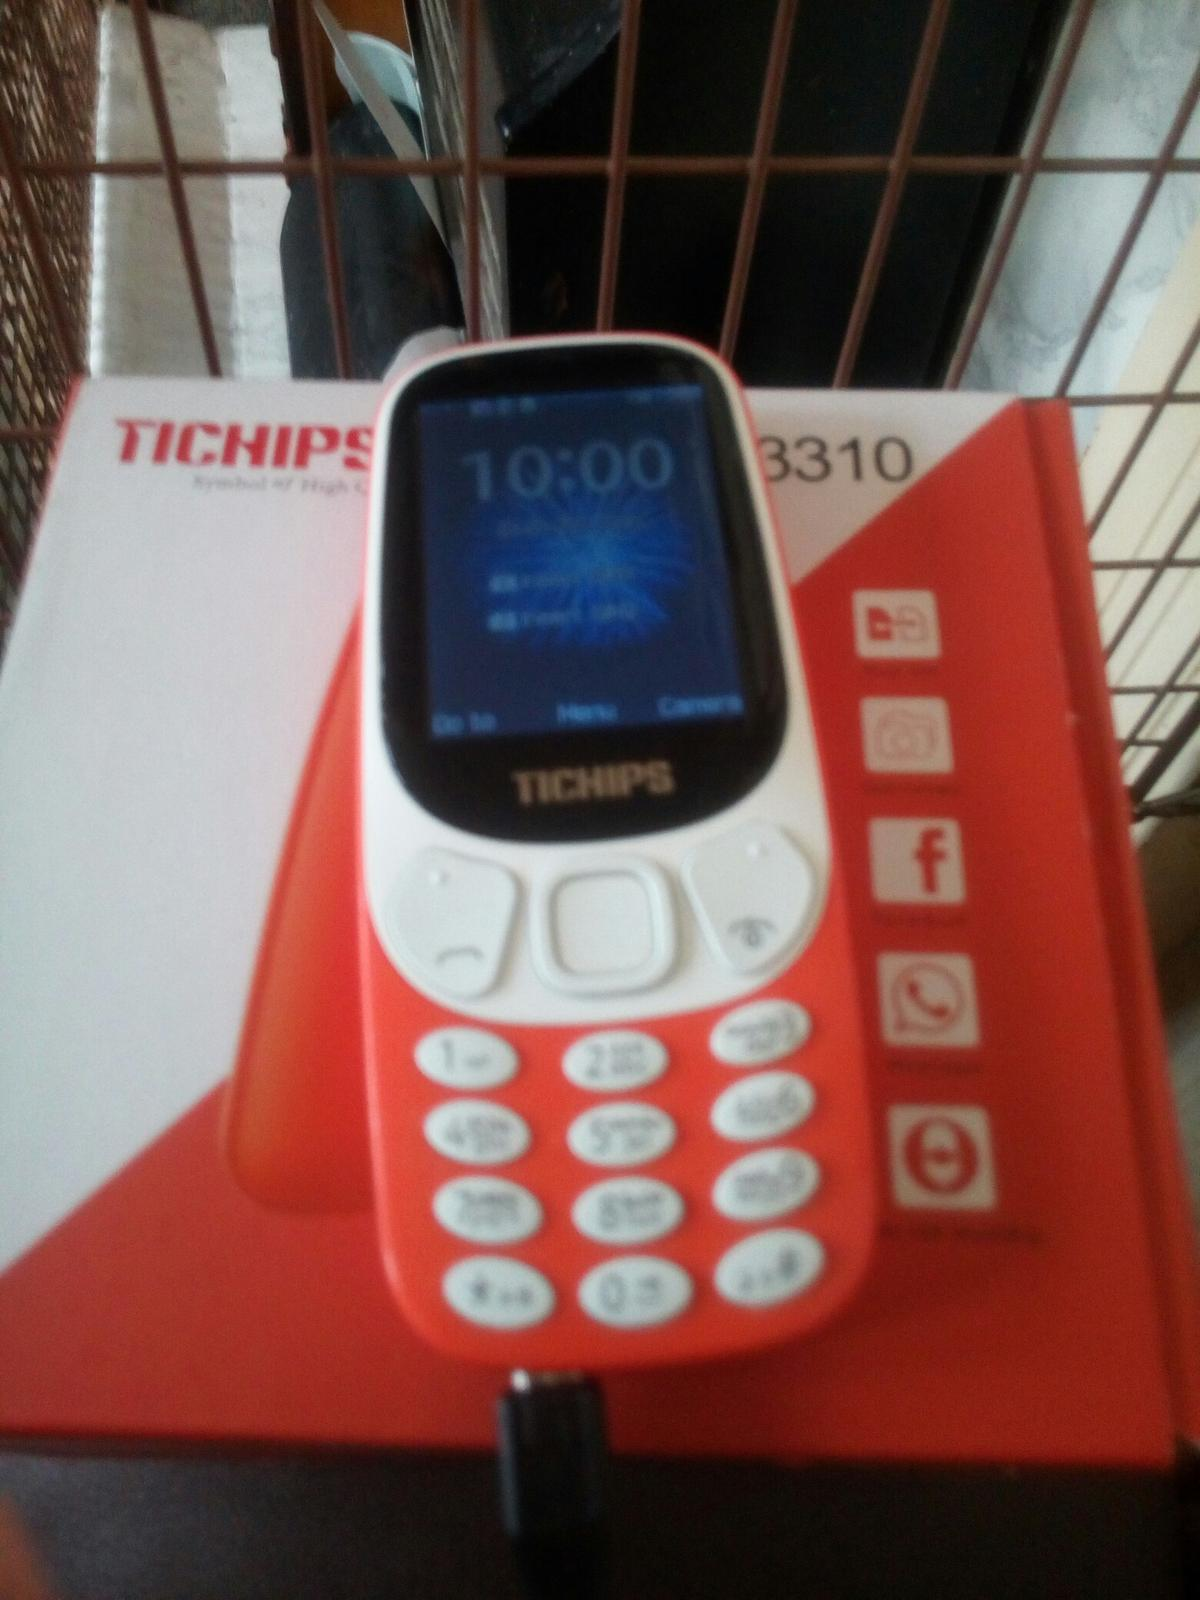 Tichips t3310 mobile phone